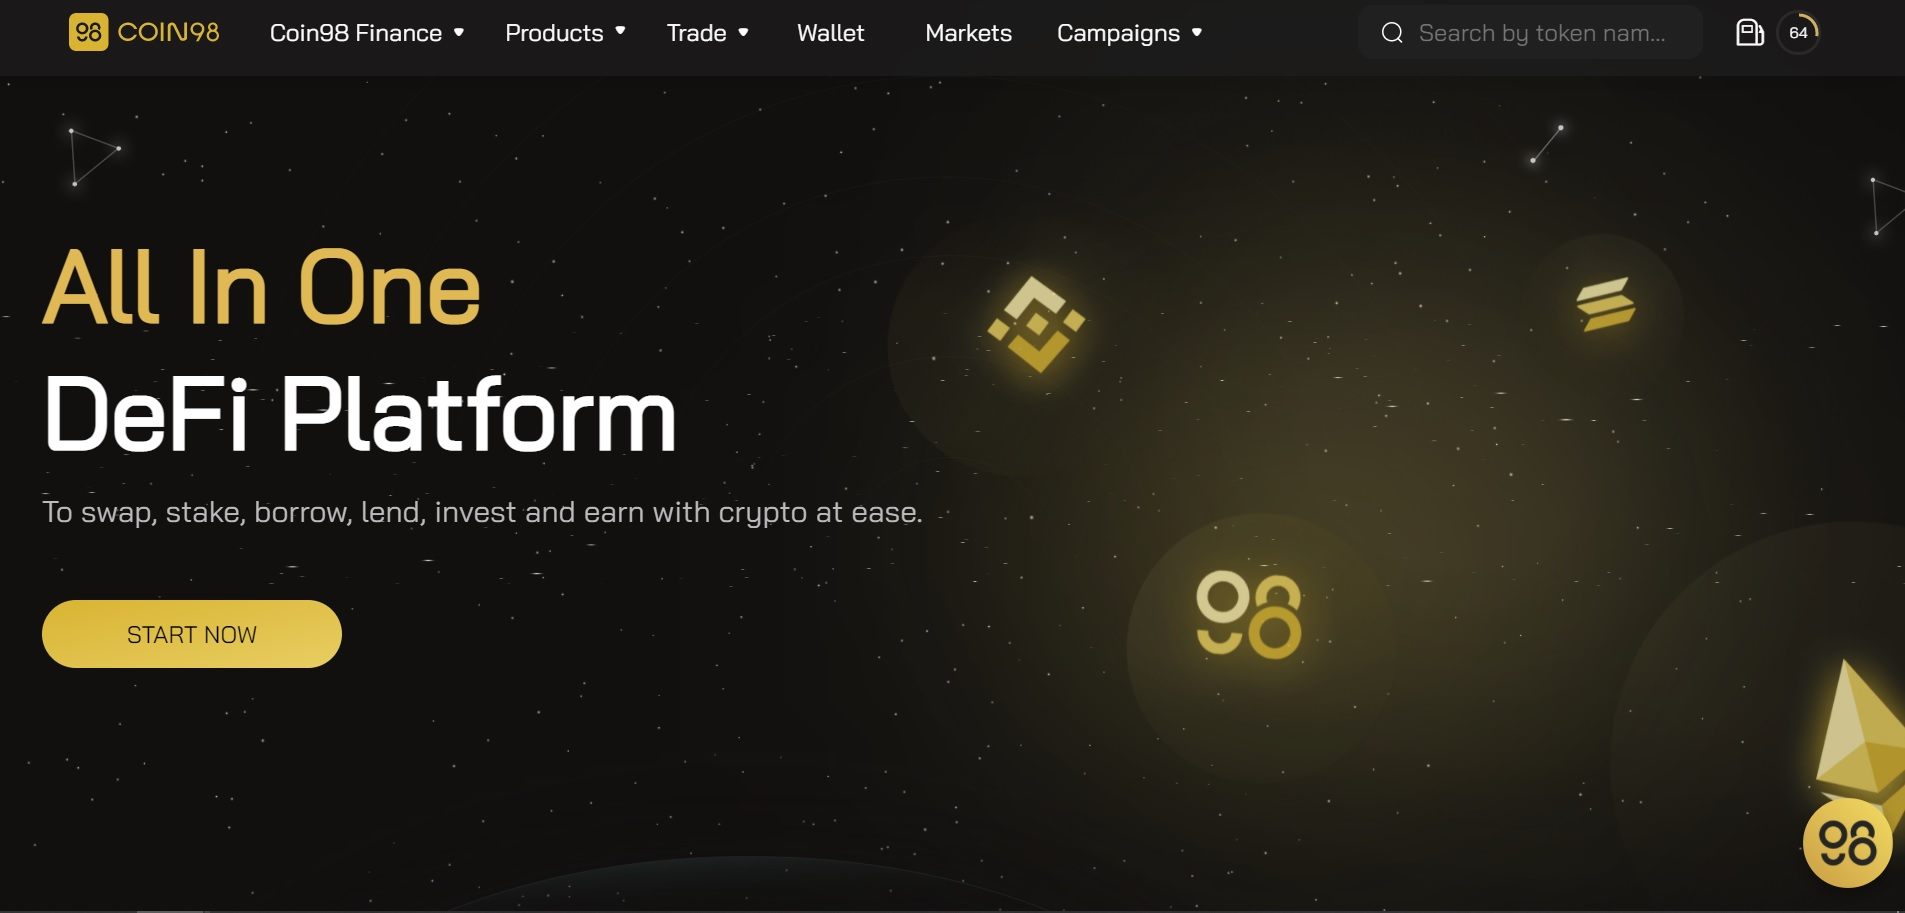 Homepage of the project